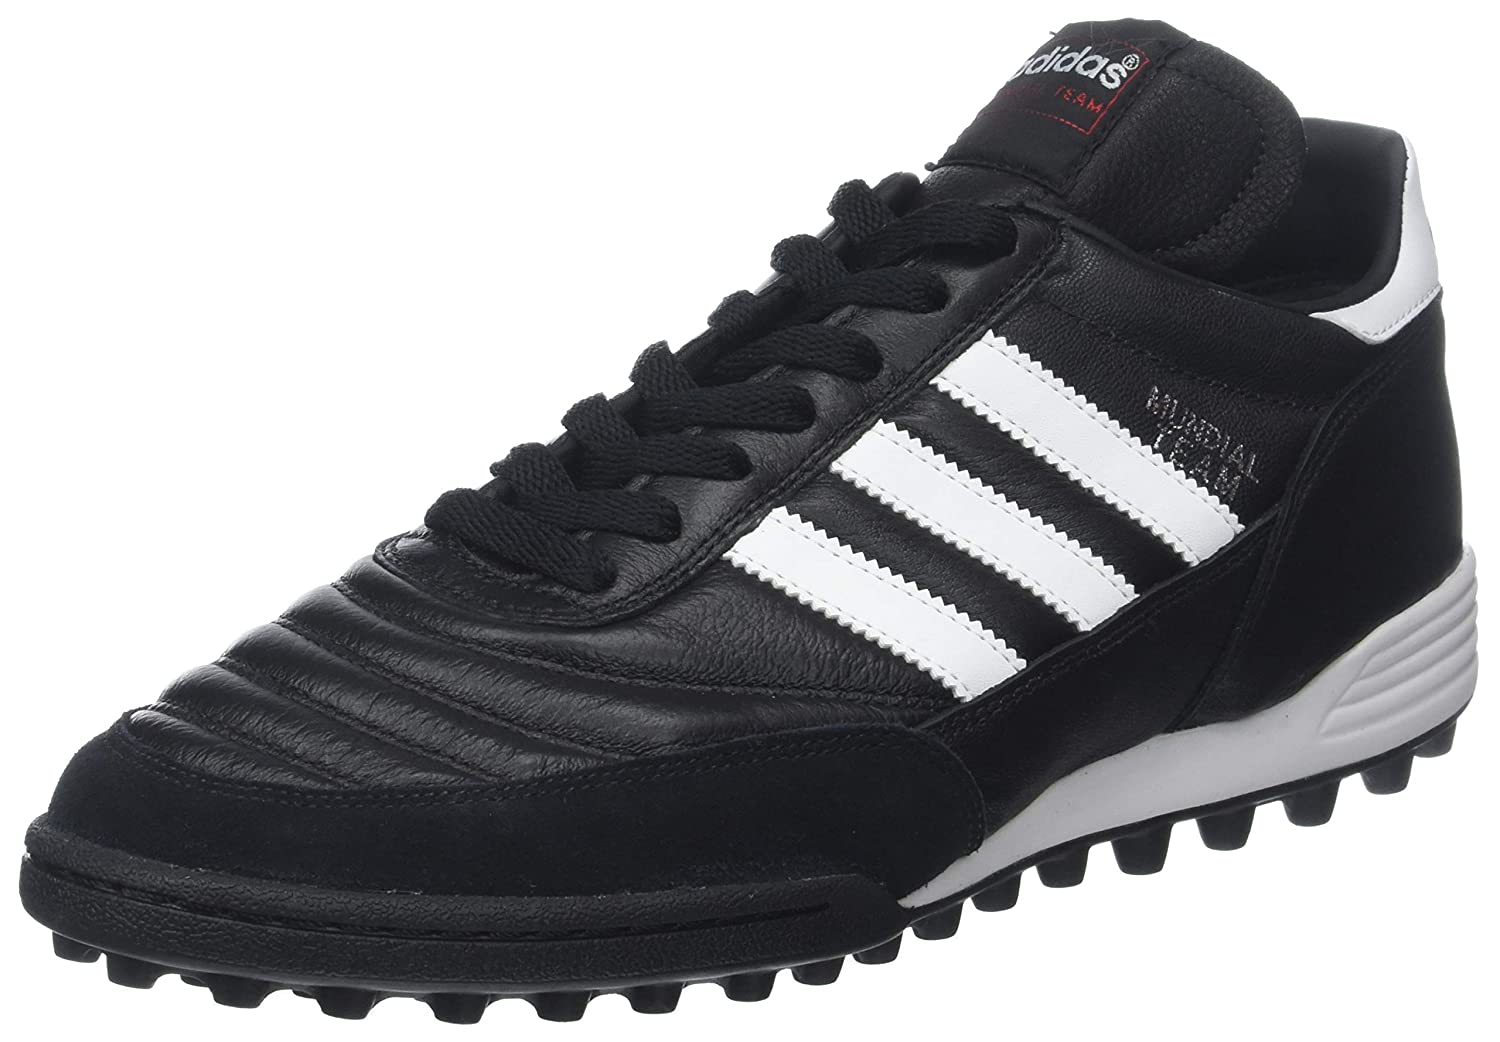 Mixte Mundial De Football Adulte TeamChaussures Adidas PiZuXk